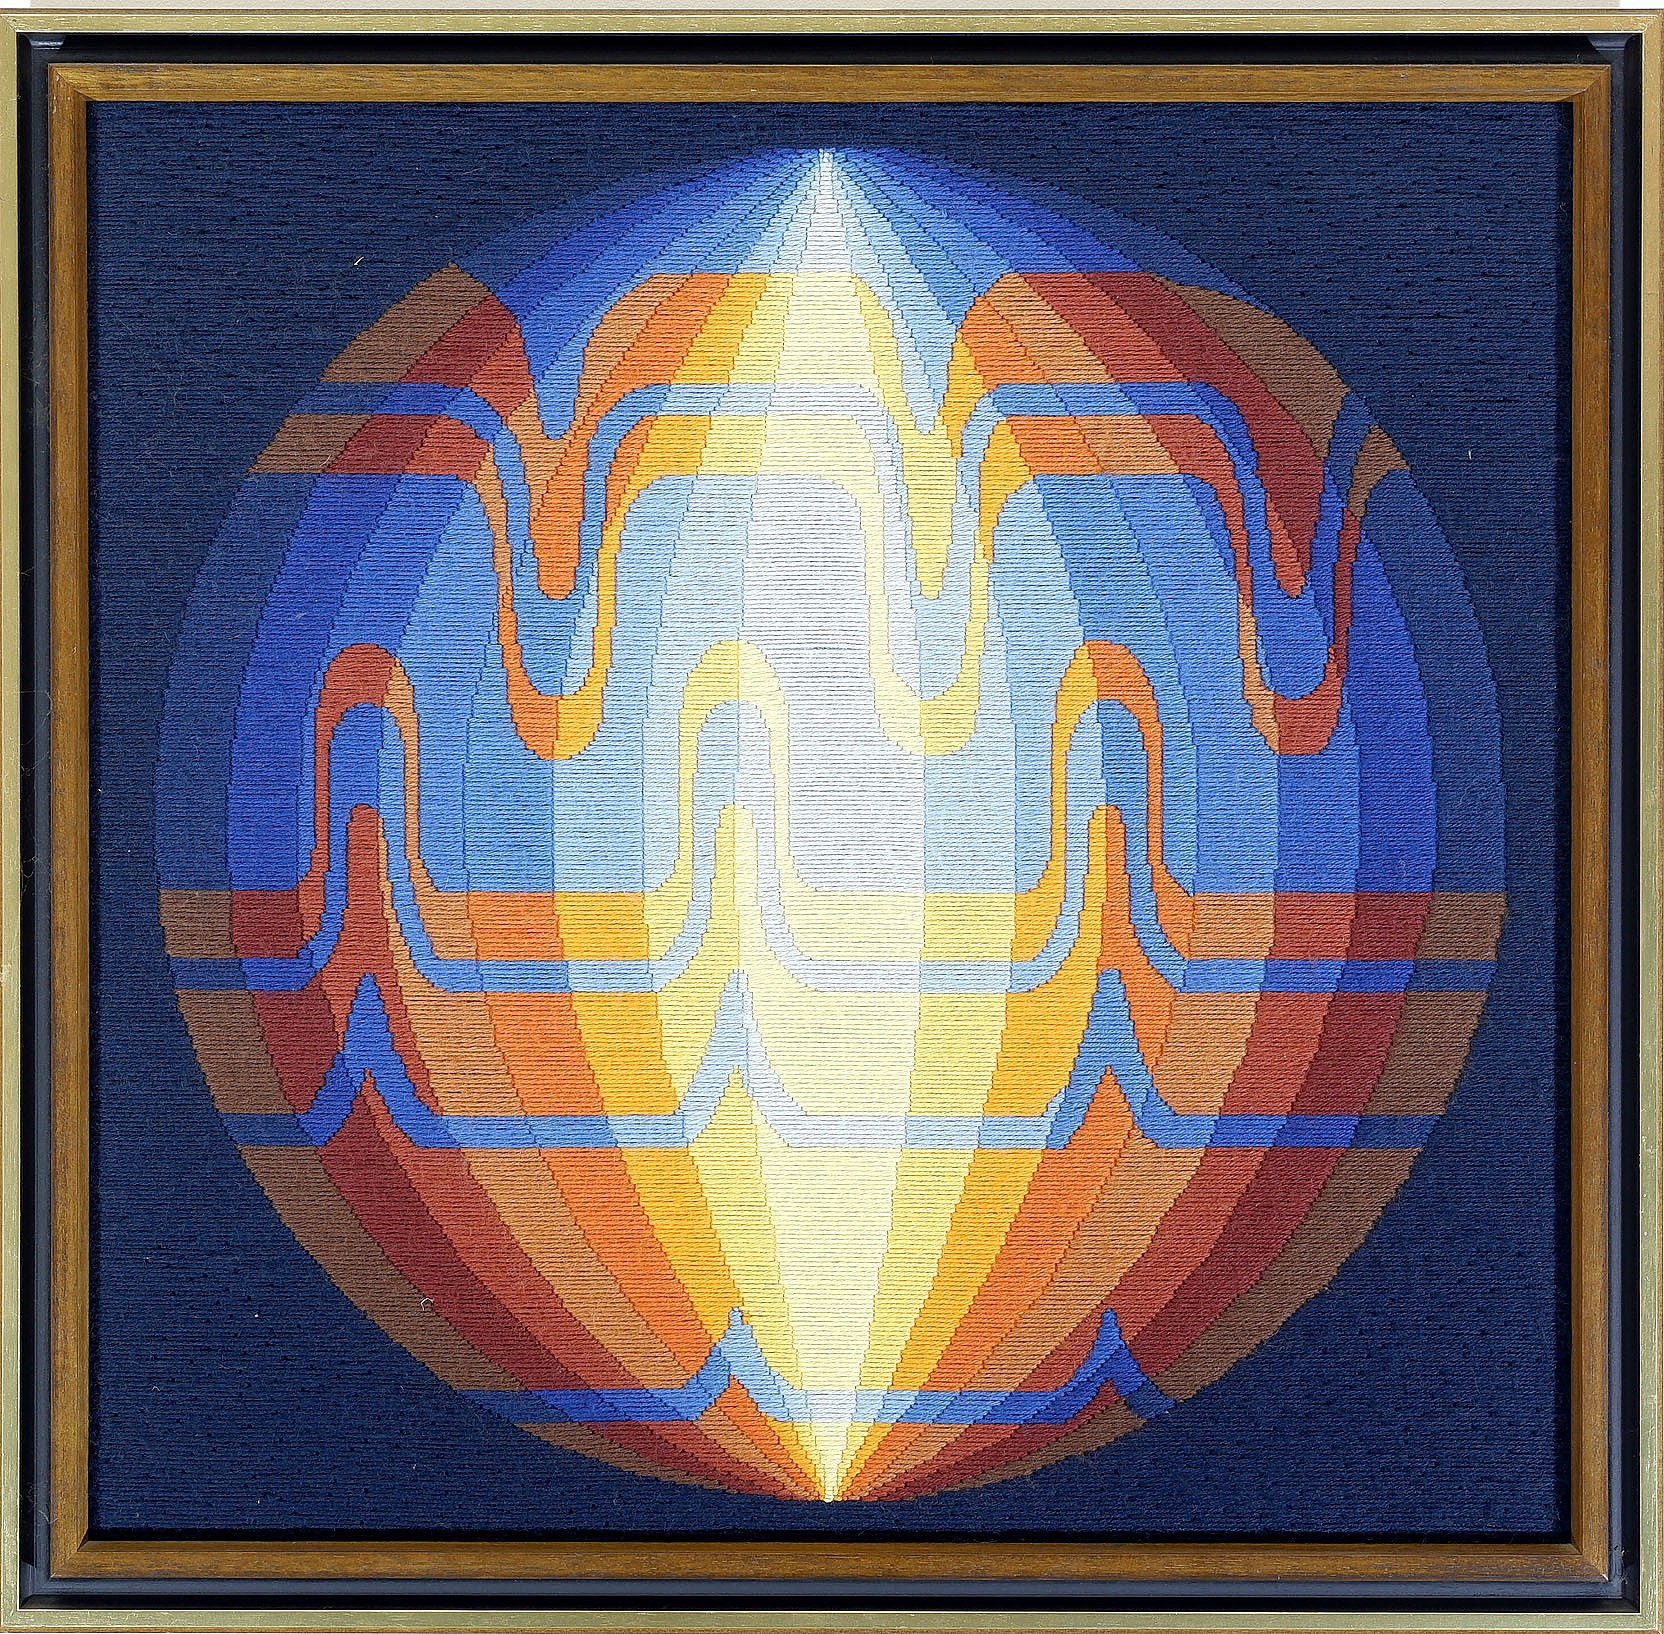 'After Danielle Gambard, Alpha 1979, Tapestry'